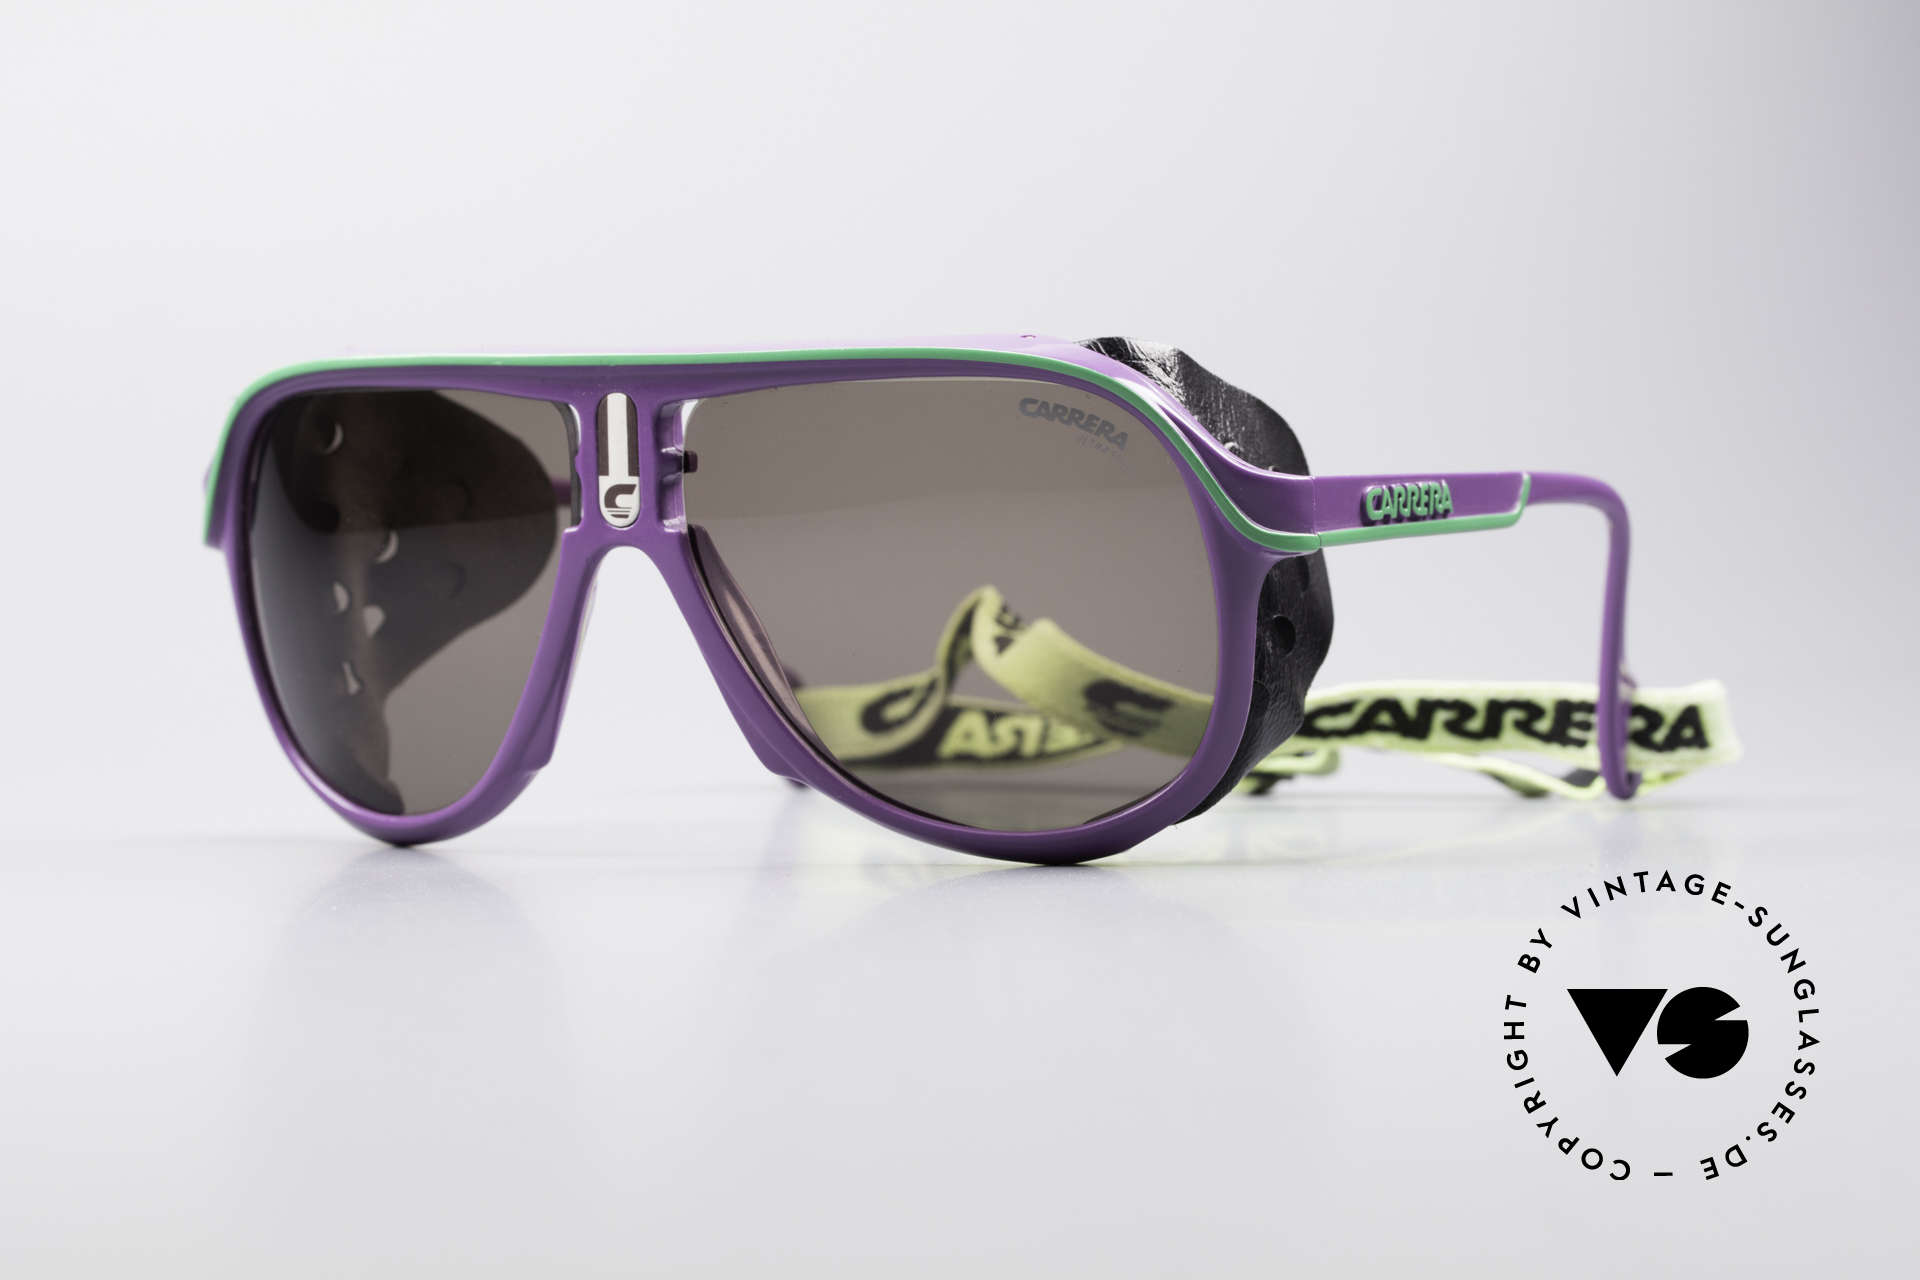 Carrera 5544 Sports Glacier Sunglasses, vintage Carrera sports and glacier sunglasses from 1990, Made for Men and Women